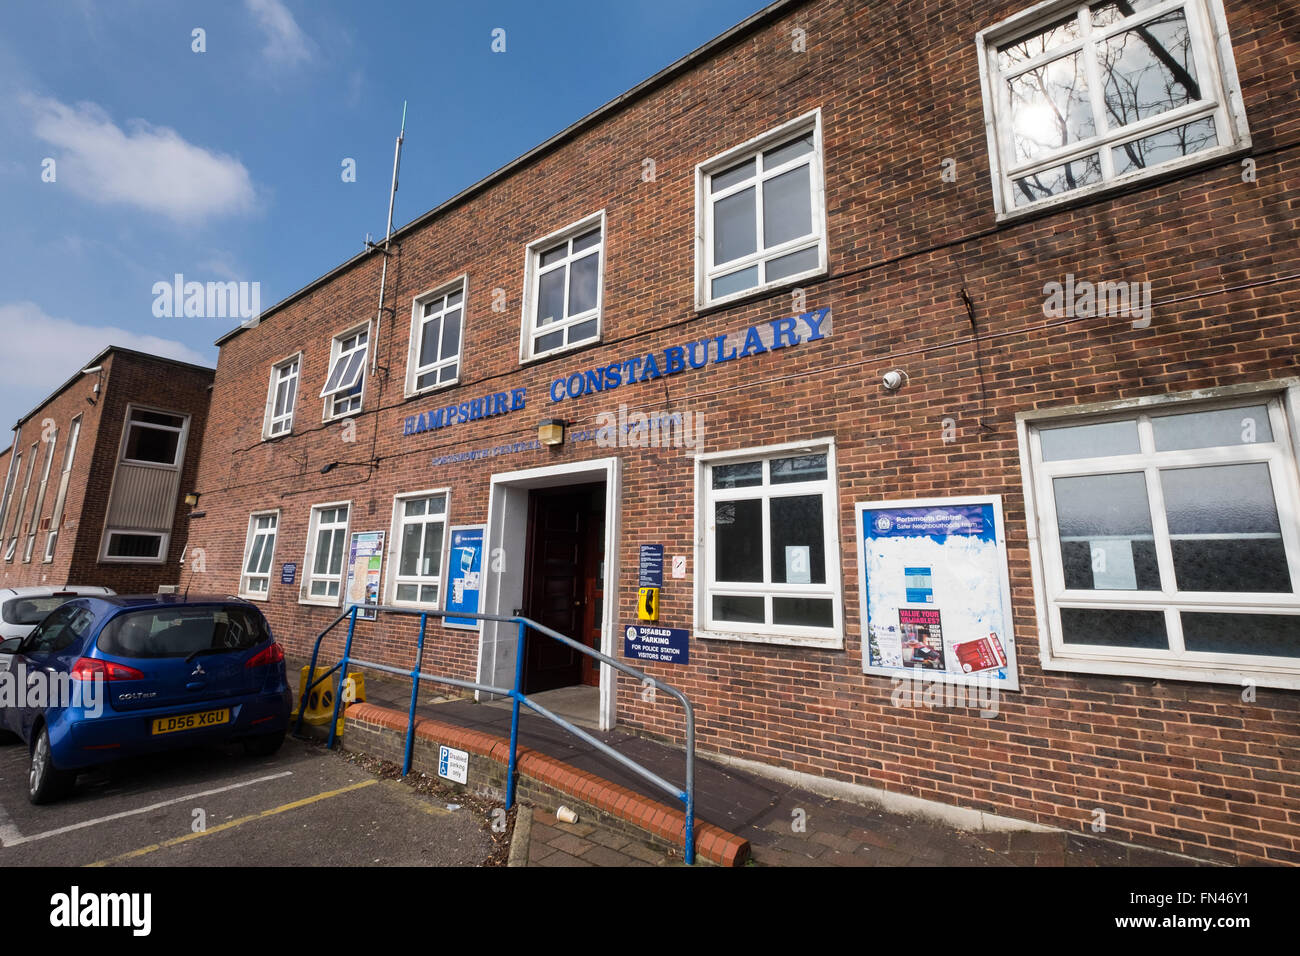 Portsmouth central Police station, Portsmouth, Hampshire, UK - Stock Image